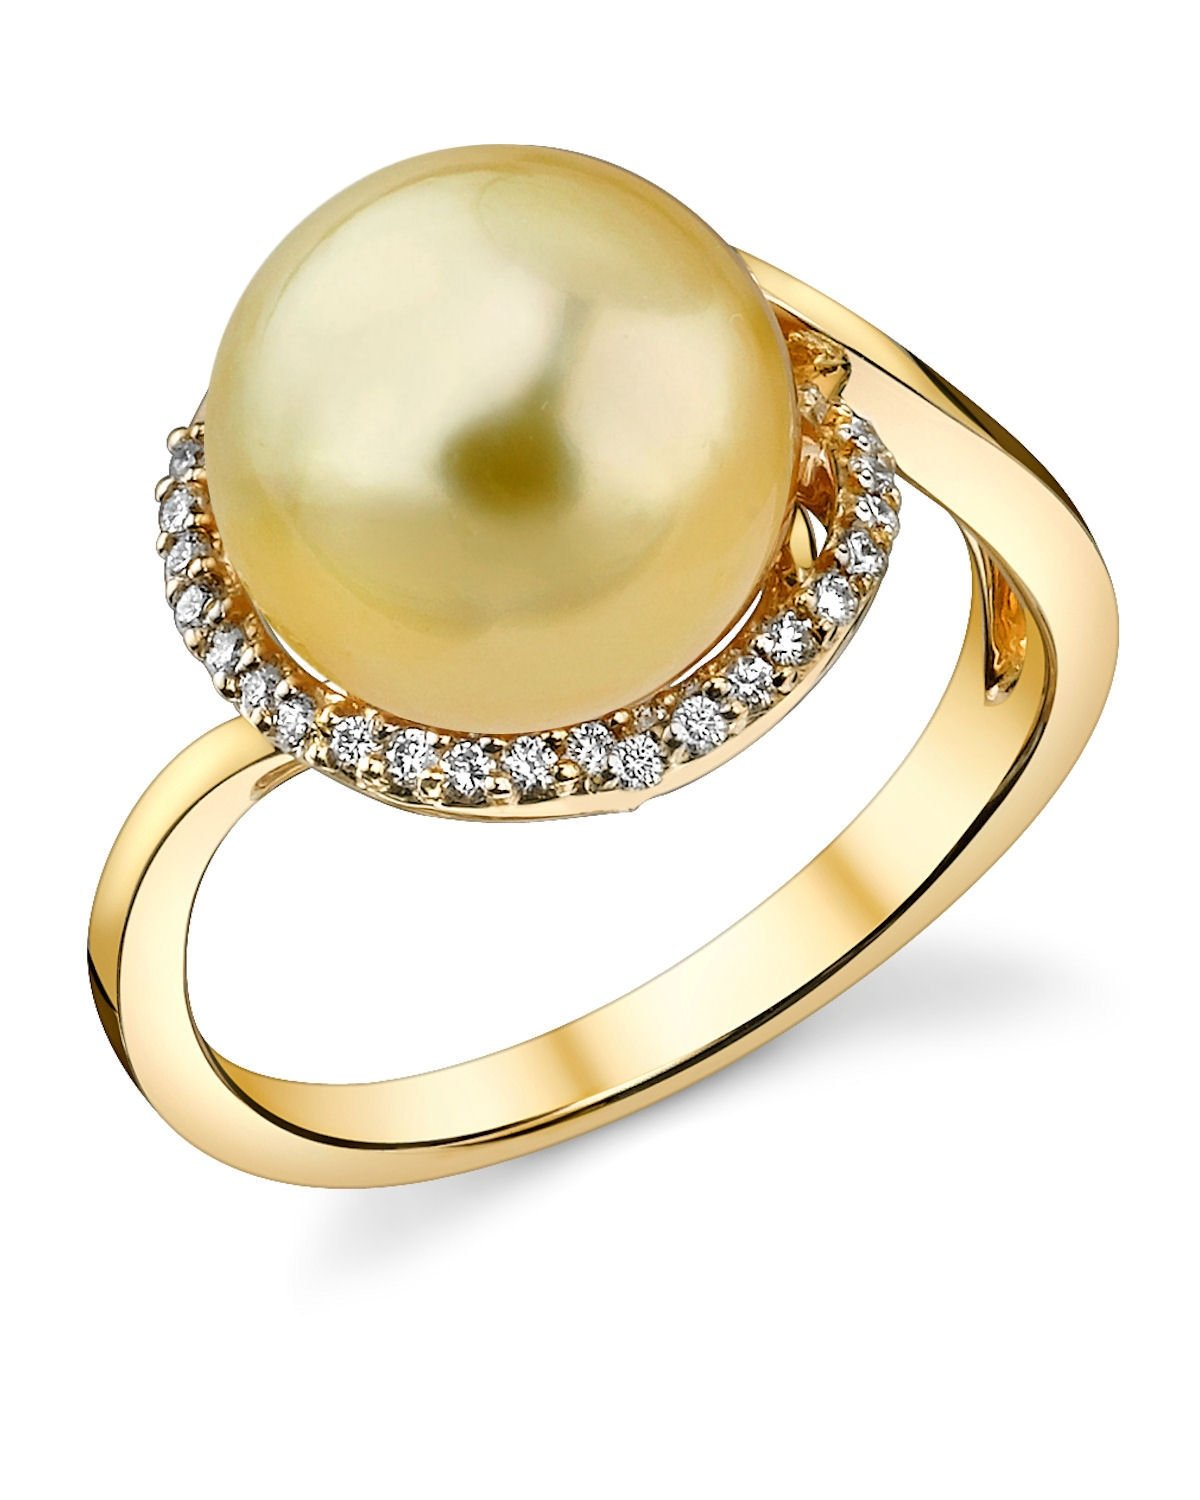 10mm Golden South Sea Cultured Pearl & Diamond Summer Ring in 18K Gold